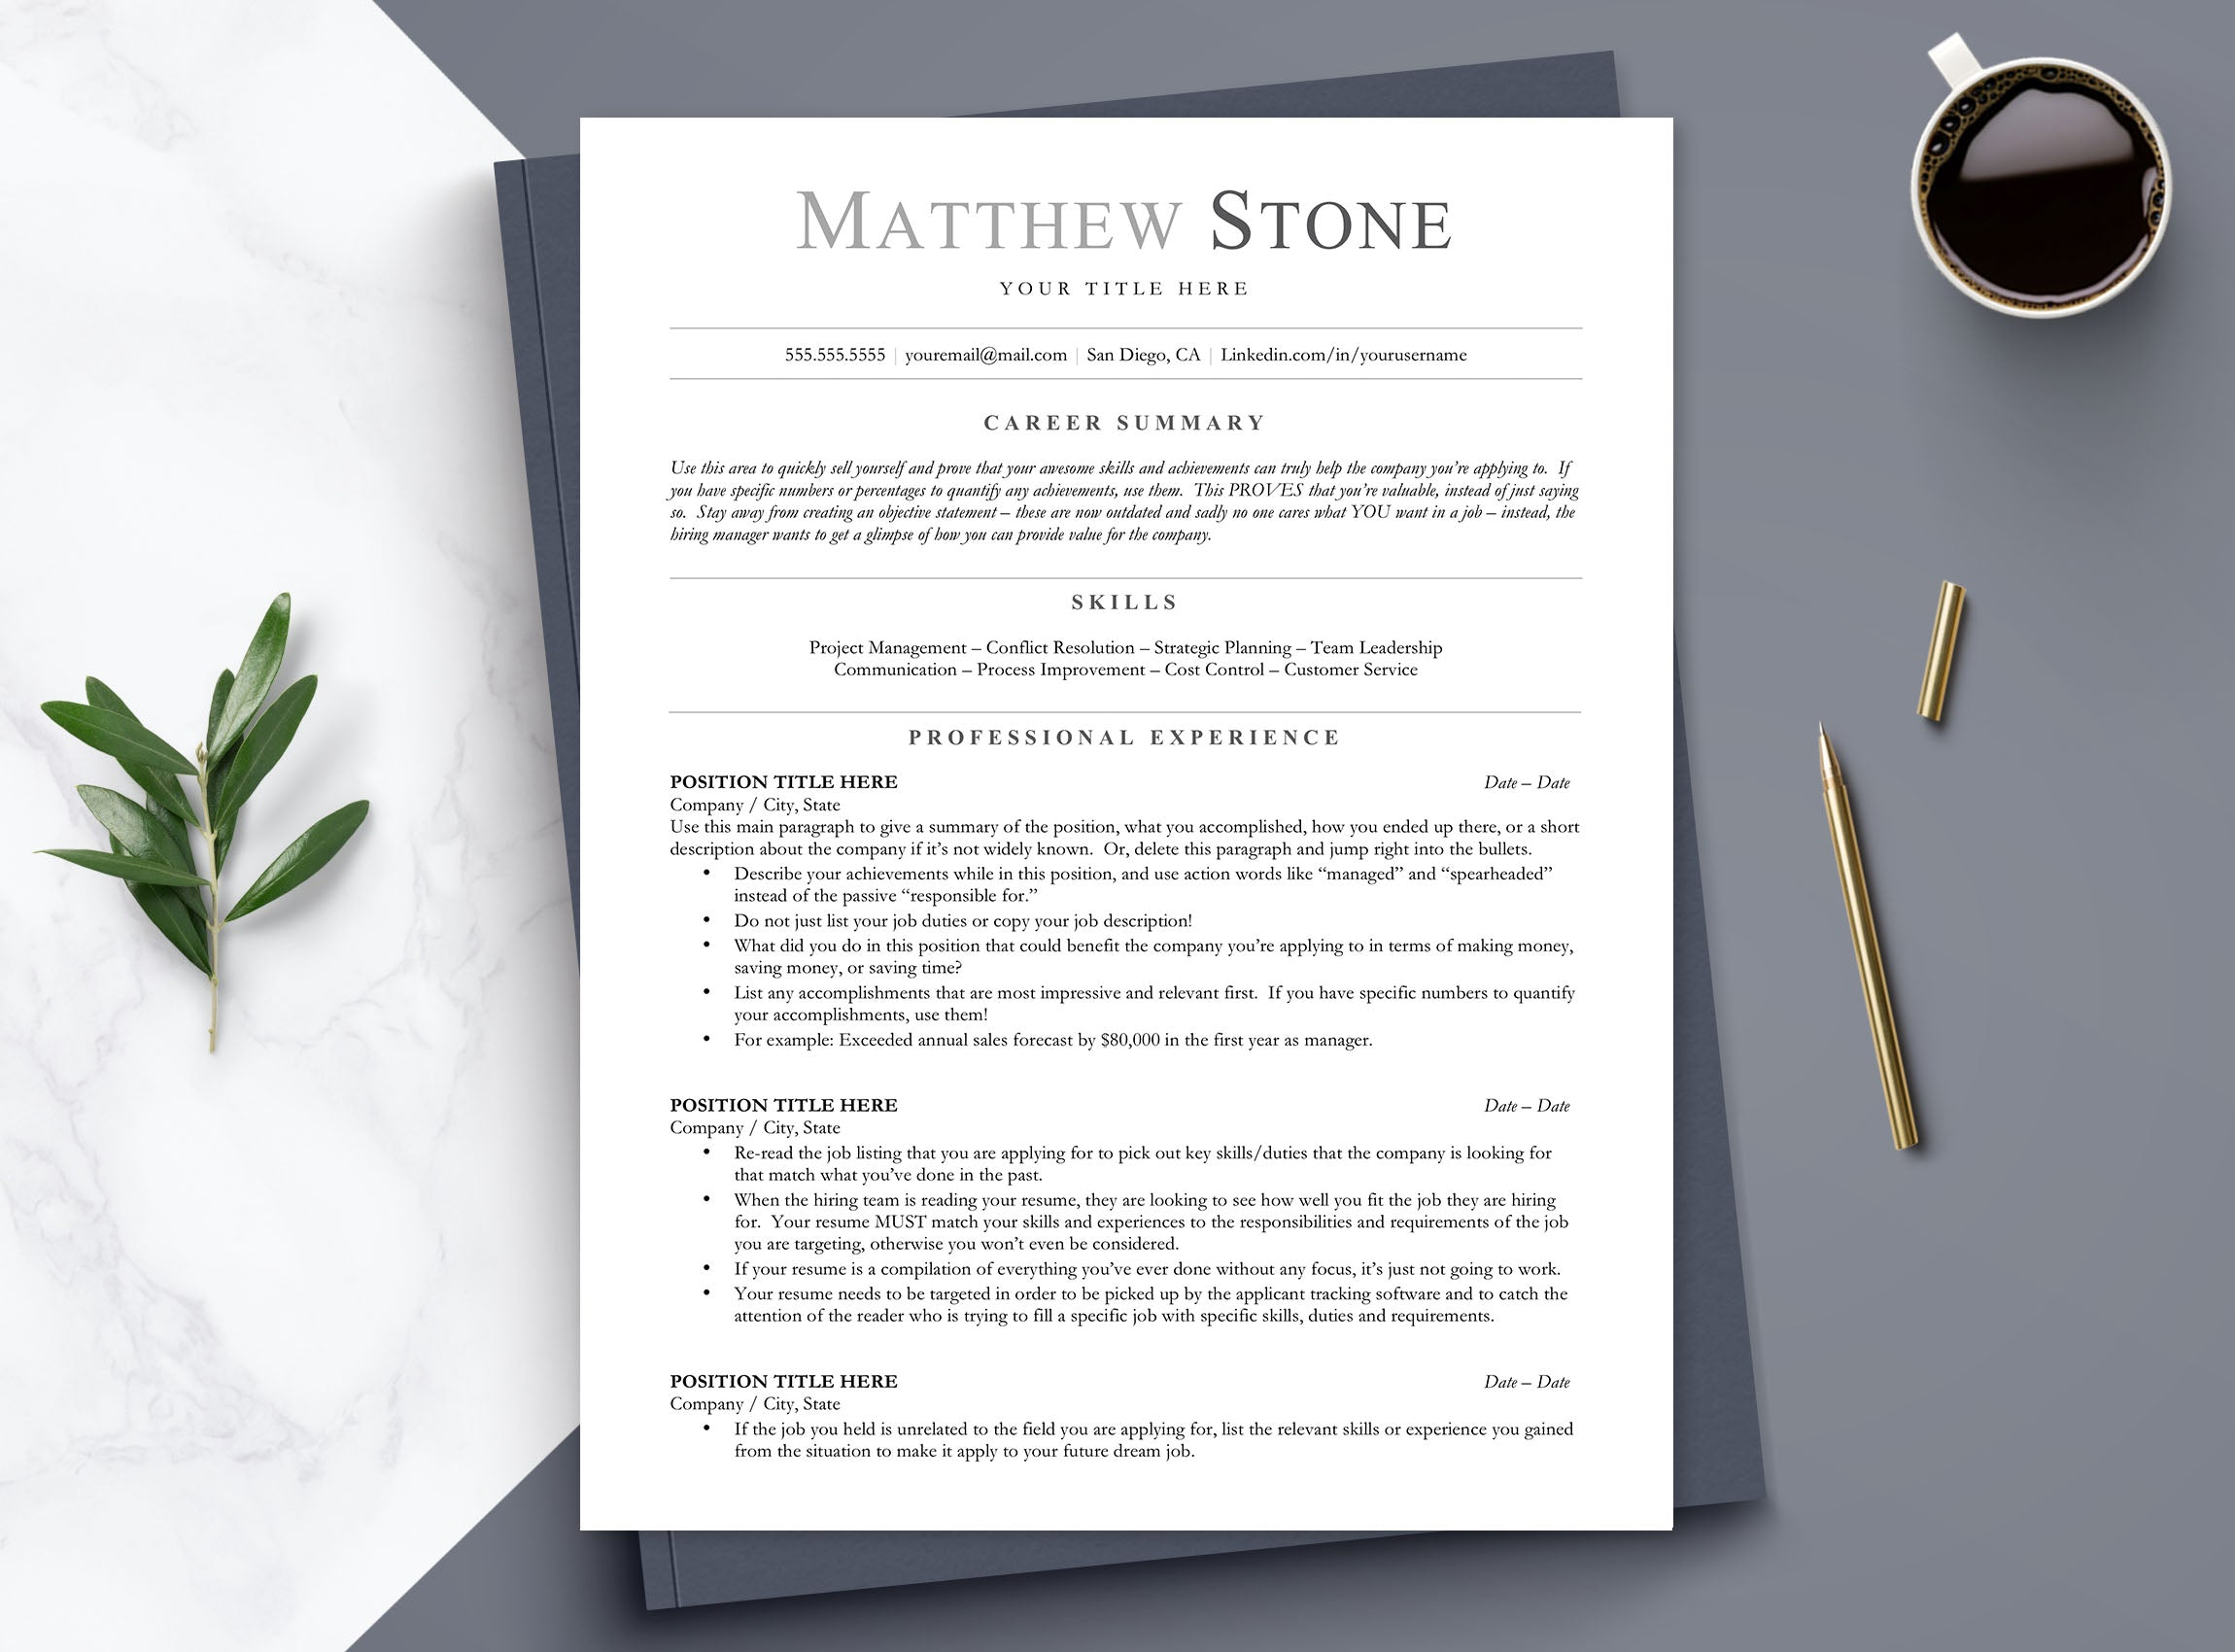 Instant Download A4 /& US Size ATS Friendly Minimal Designed CV Resume Template for Google Docs and Ms Word Cover Letter Reference